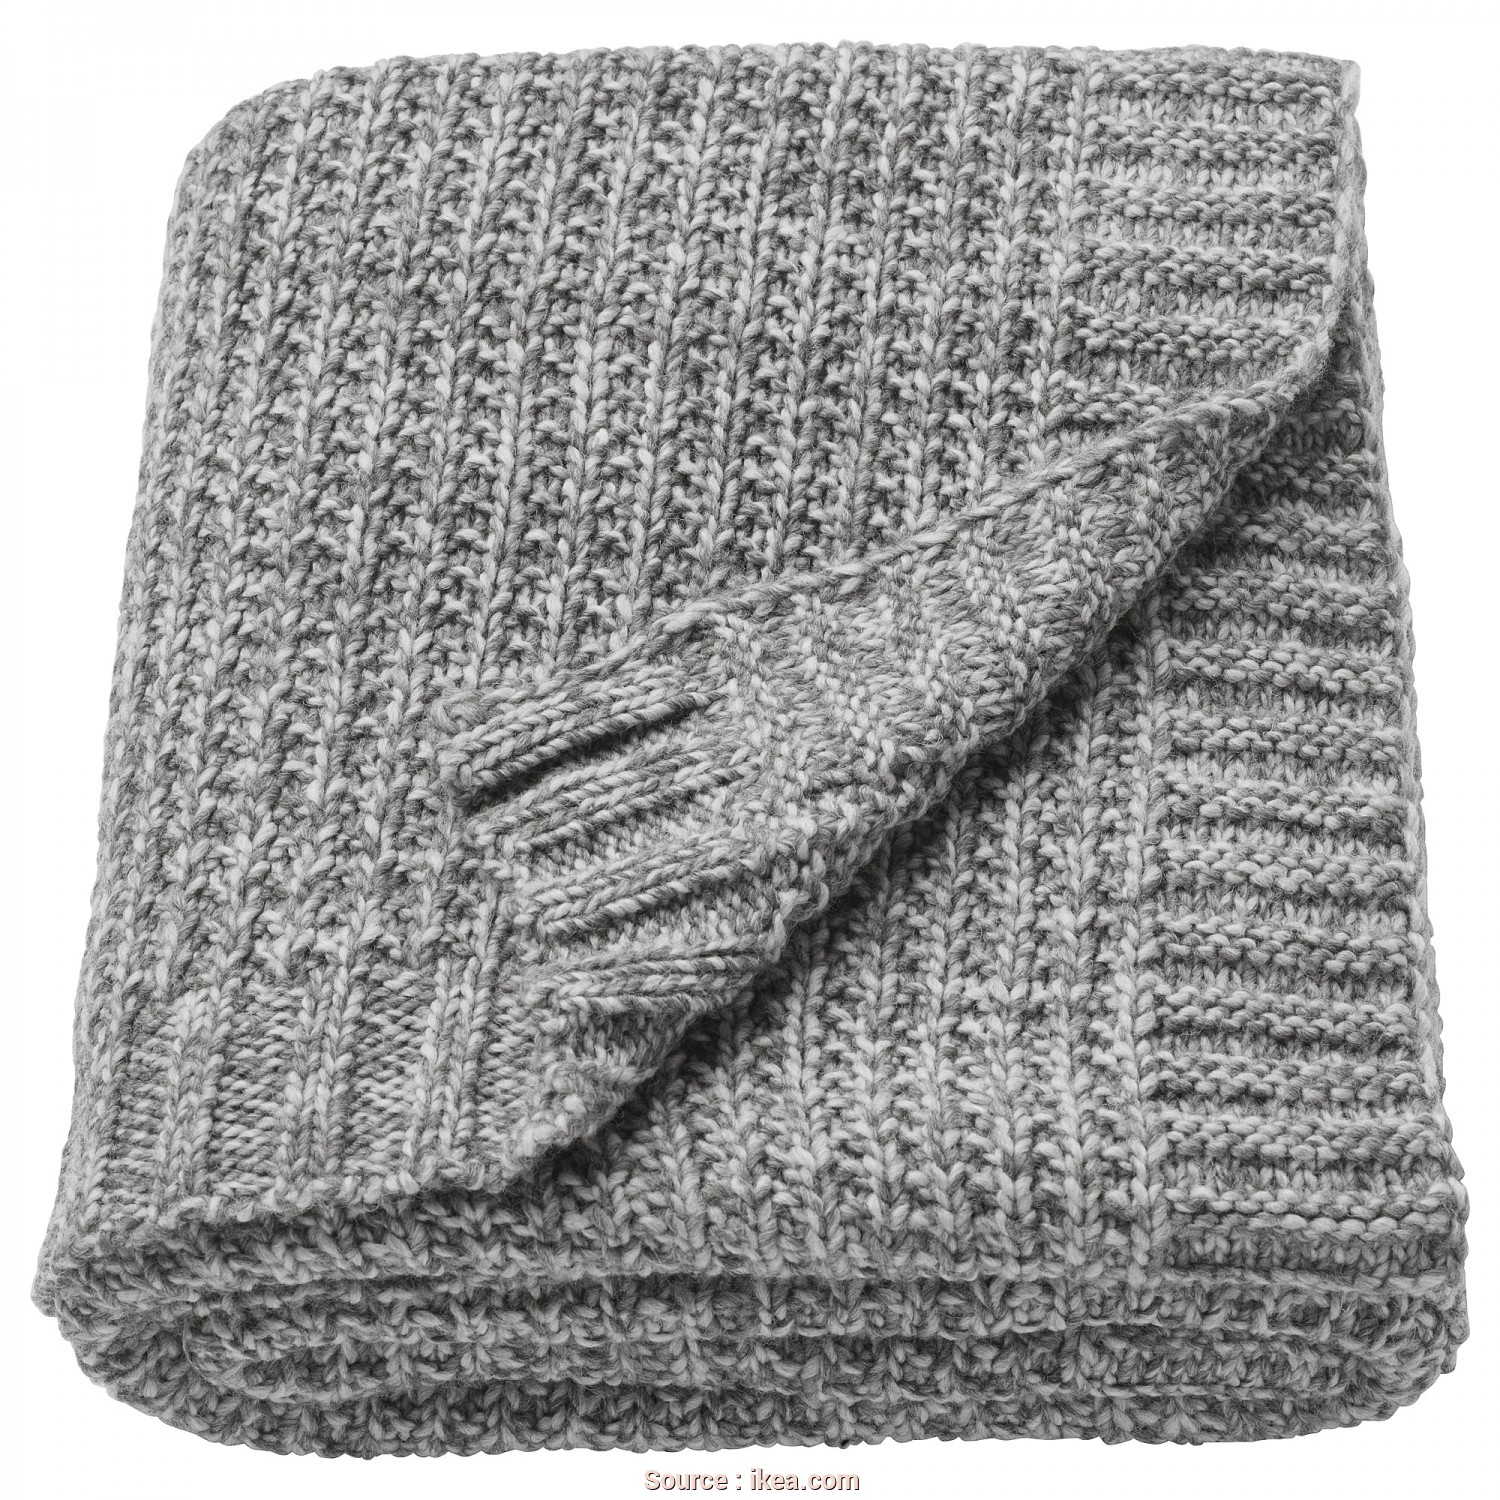 Ikea Backabro 2 Seater, Bellissima IKEA DUNÄNG Throw Wool Is Stain-Repellent, Hard-Wearing, Provides Good Insulation